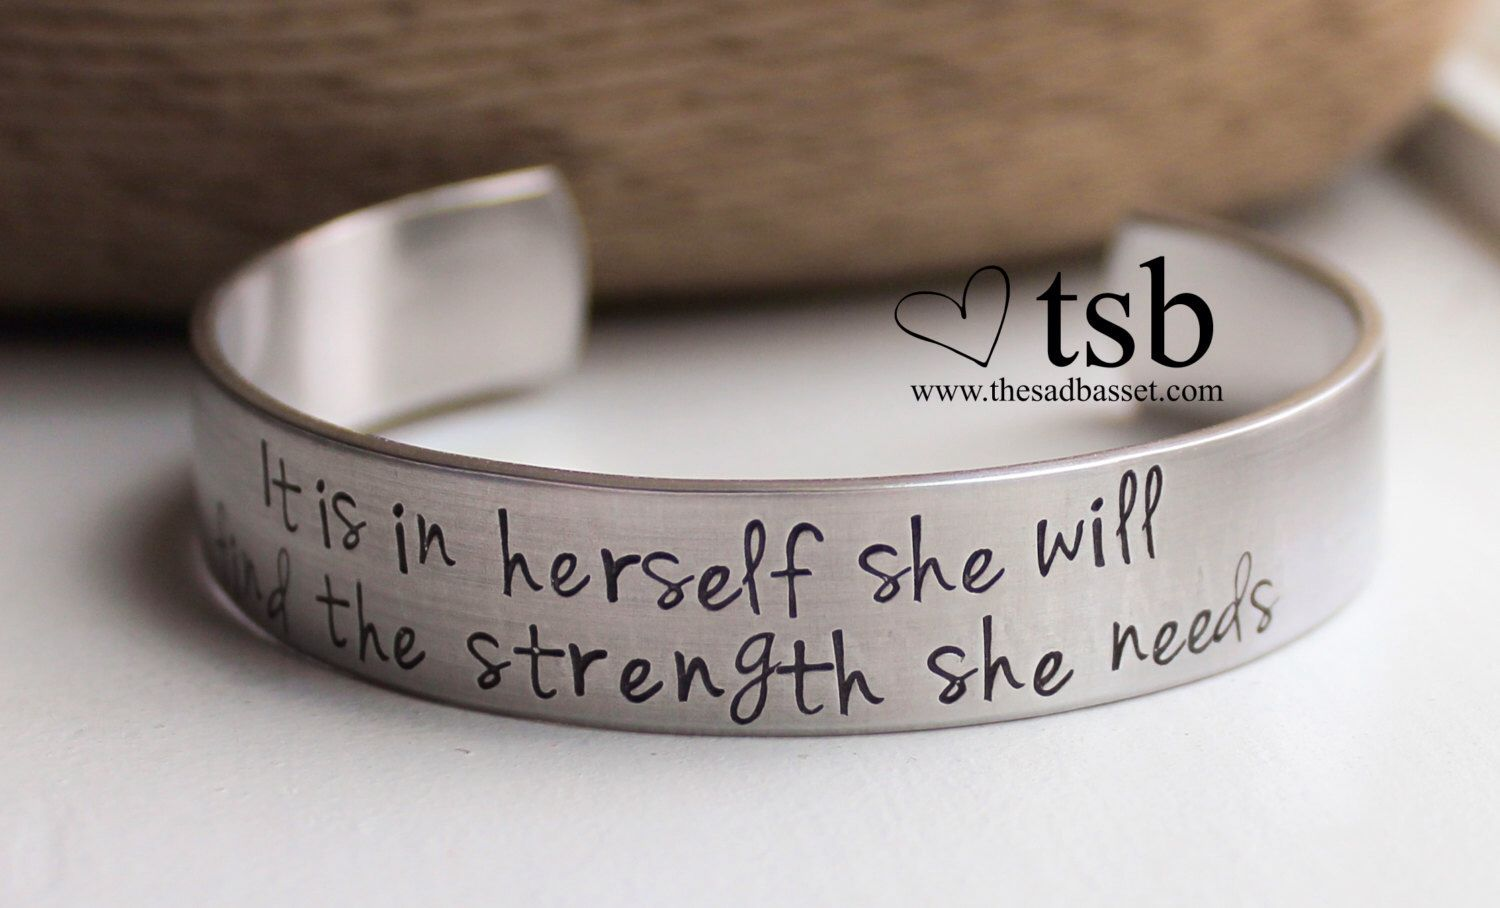 It Is In Herself She Will Find The Strength She Needs Handstamped Aluminum Cuff - Quote Jewelry, Inspirational Jewelry, Military Jewelry by TheSadBasset on Etsy https://www.etsy.com/listing/168352695/it-is-in-herself-she-will-find-the